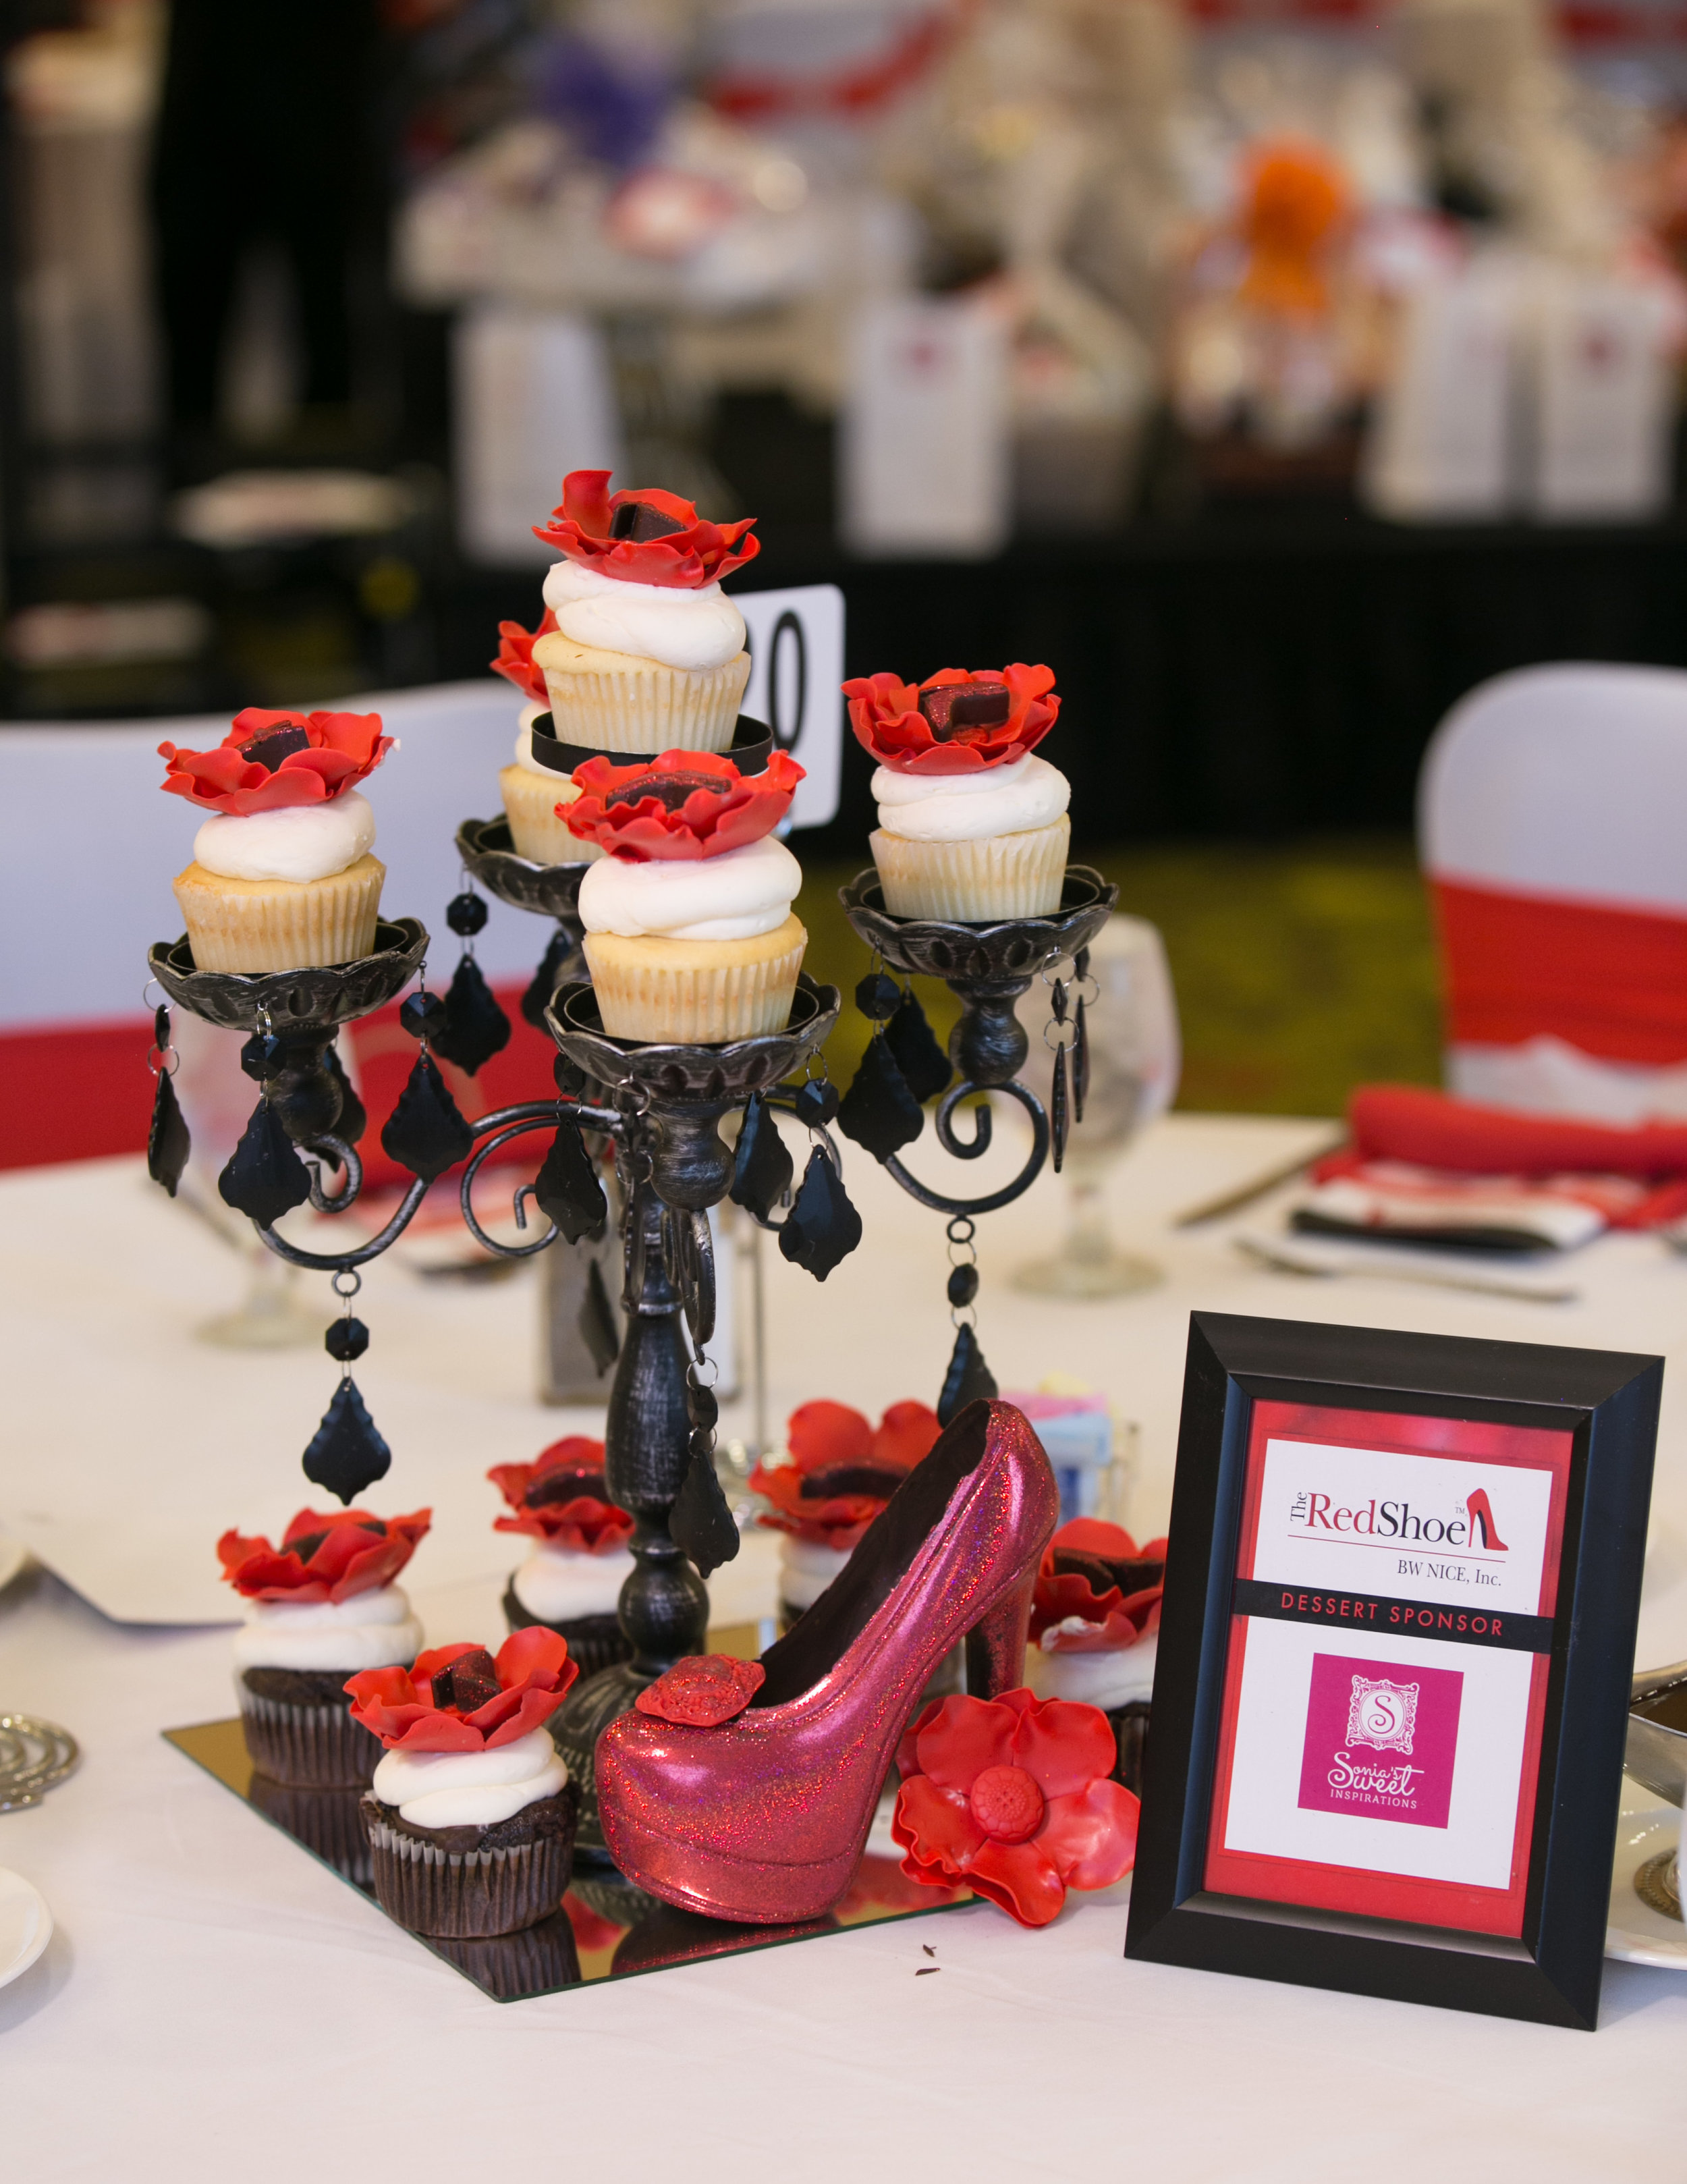 LightMaster-Studios-BWNice-Monroe-Chapter-Red-Shoes-Event-Camelback-lodge-2018-5081.jpg